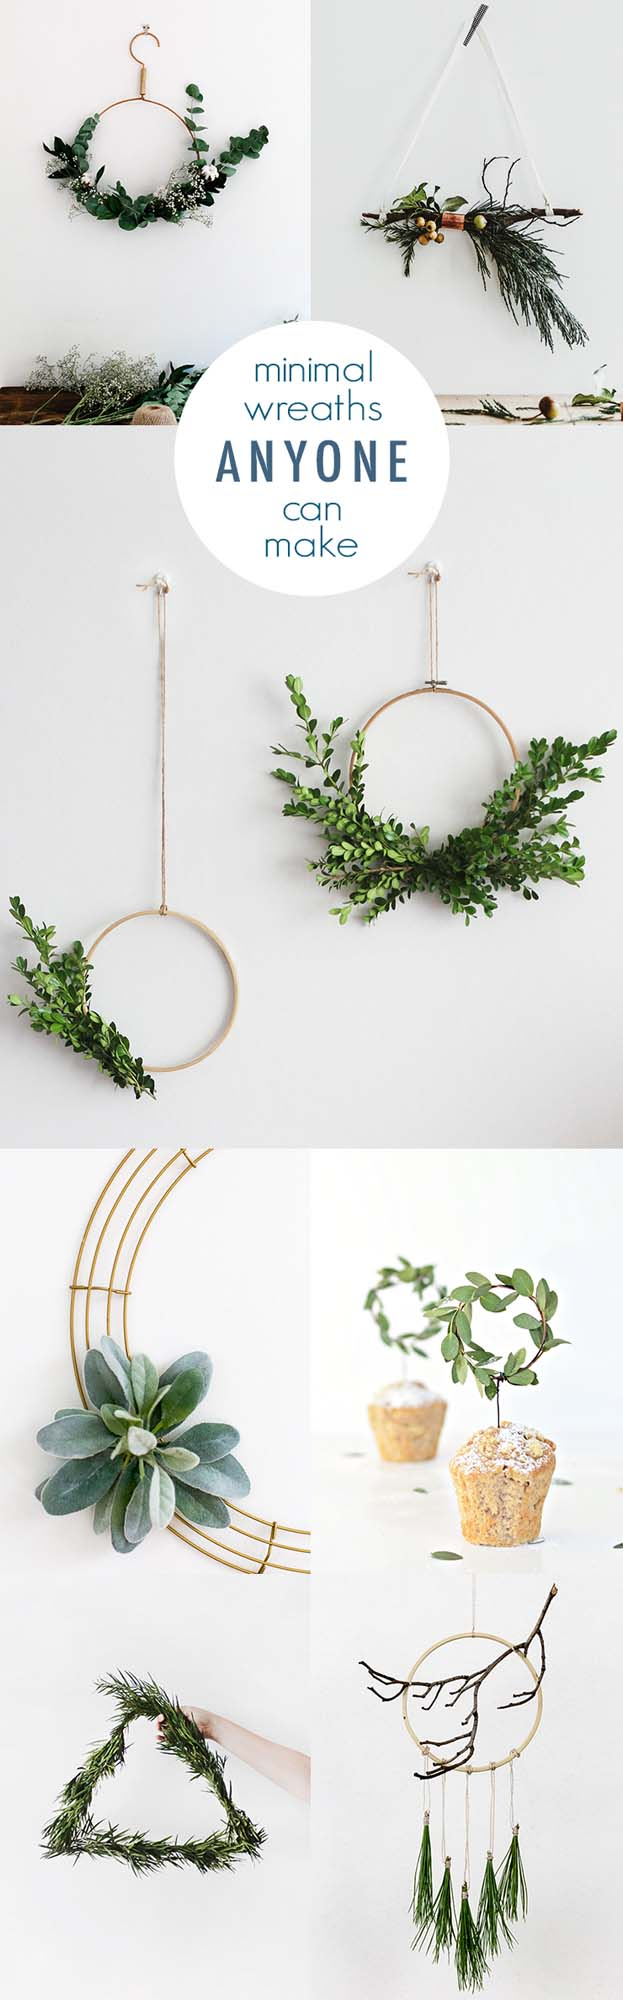 Minimal DIY Wreaths #Christmas #minimalist #decor #decorhomeideas